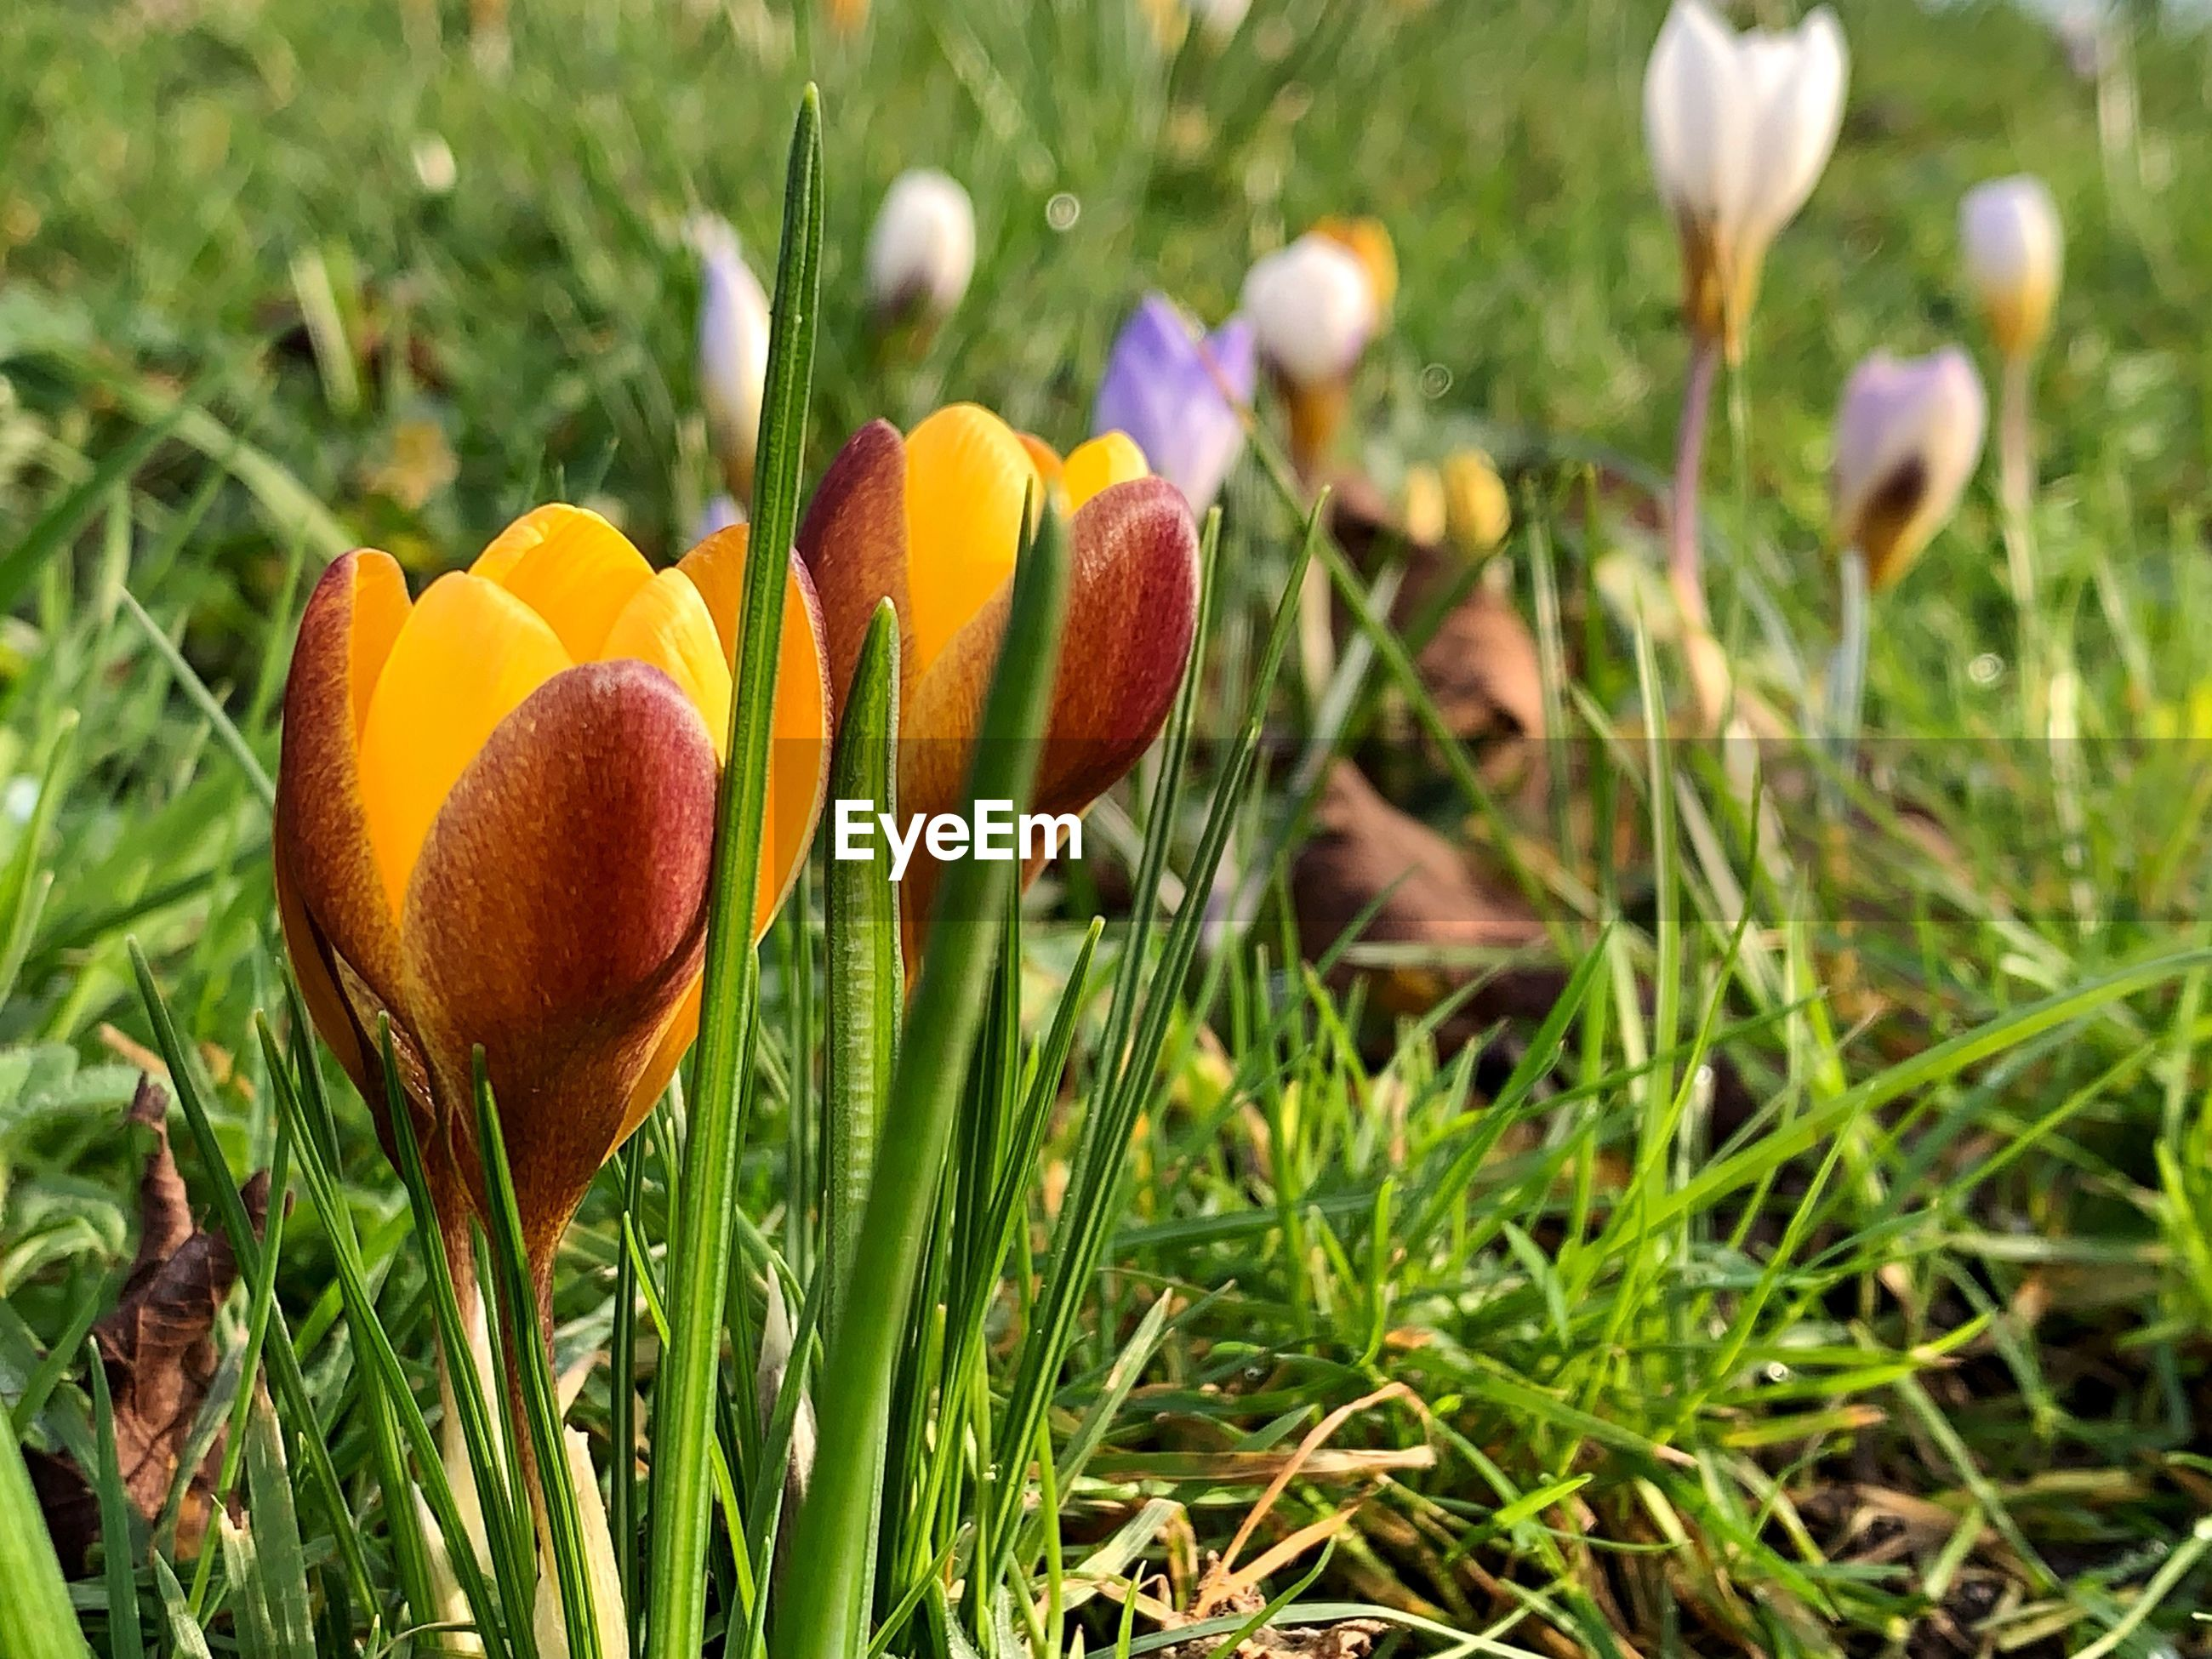 CLOSE-UP OF FRESH WHITE CROCUS FLOWERS IN FIELD